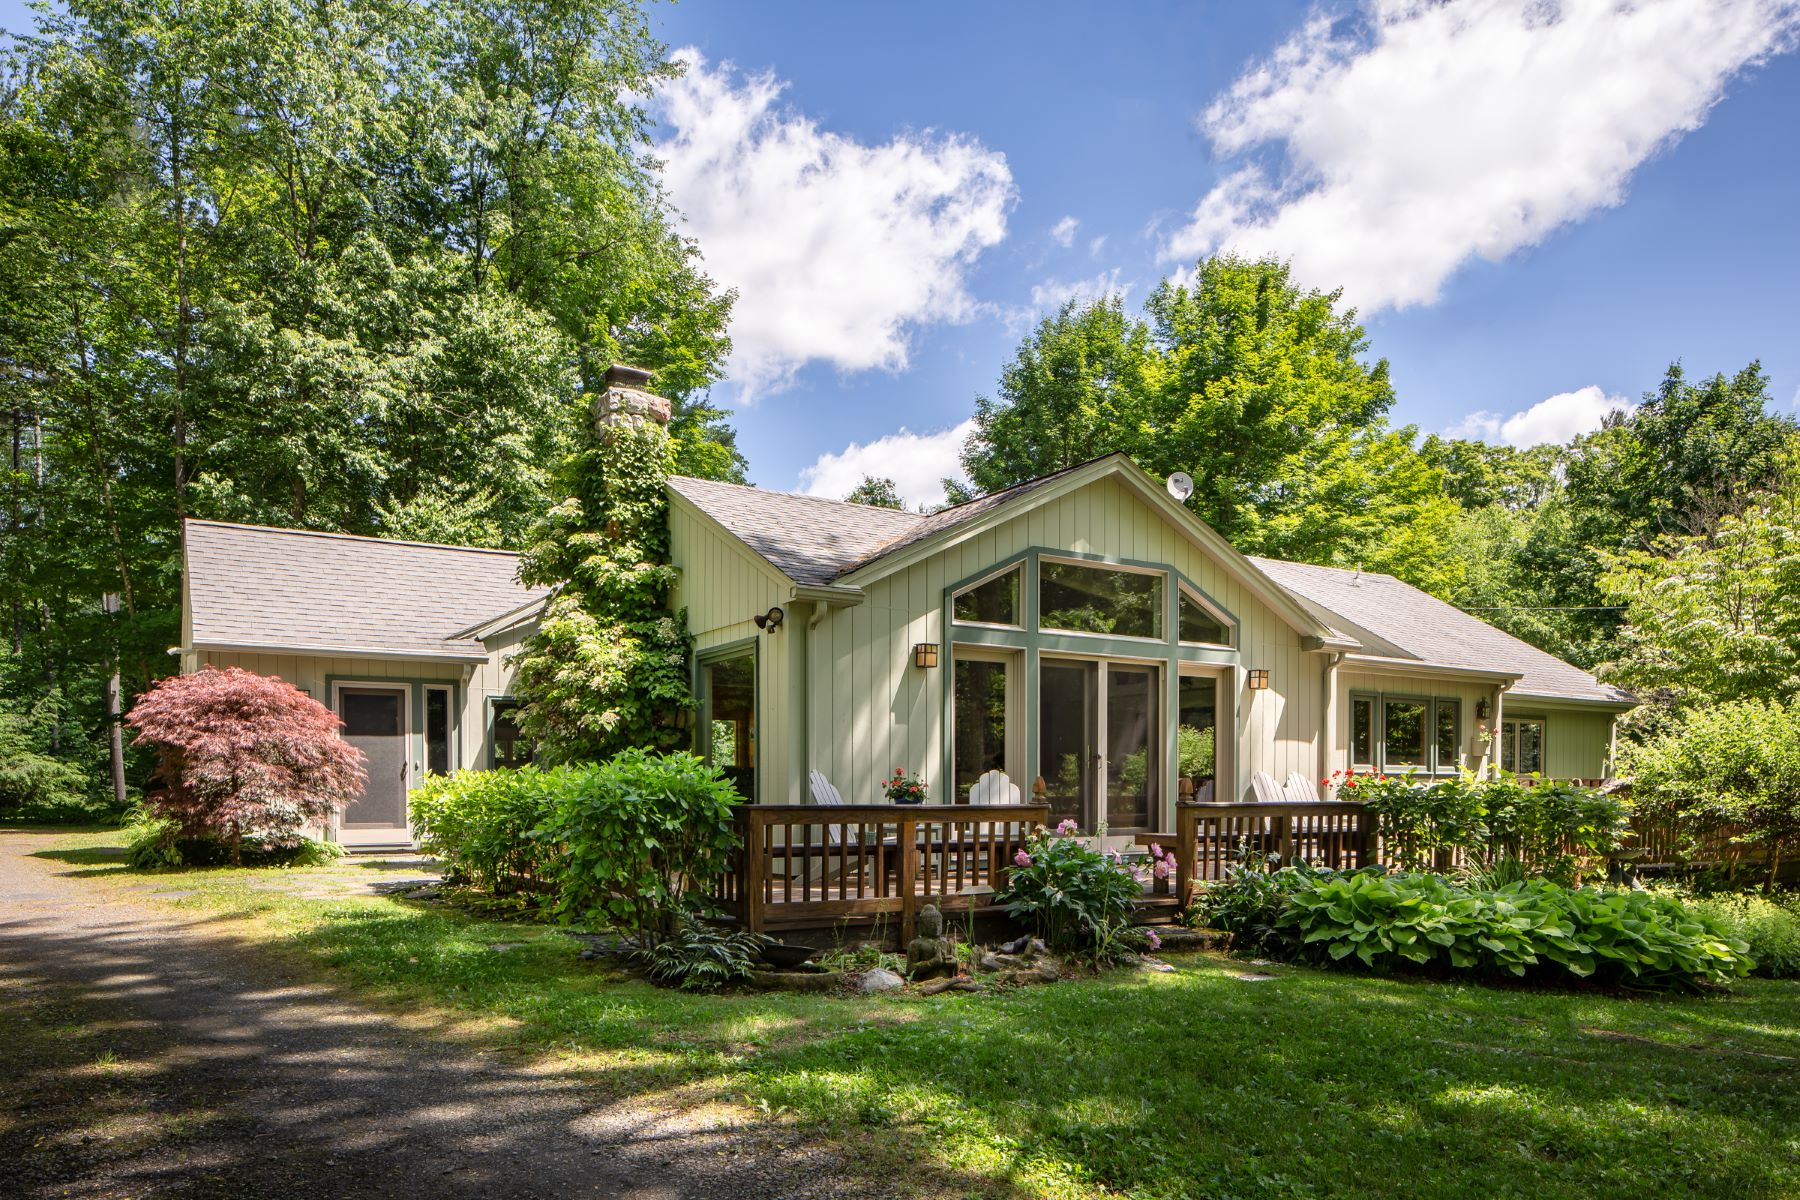 Single Family Homes for Active at Enchanted Single Level Living on the Williams River 20 Wright Ln Great Barrington, Massachusetts 01230 United States